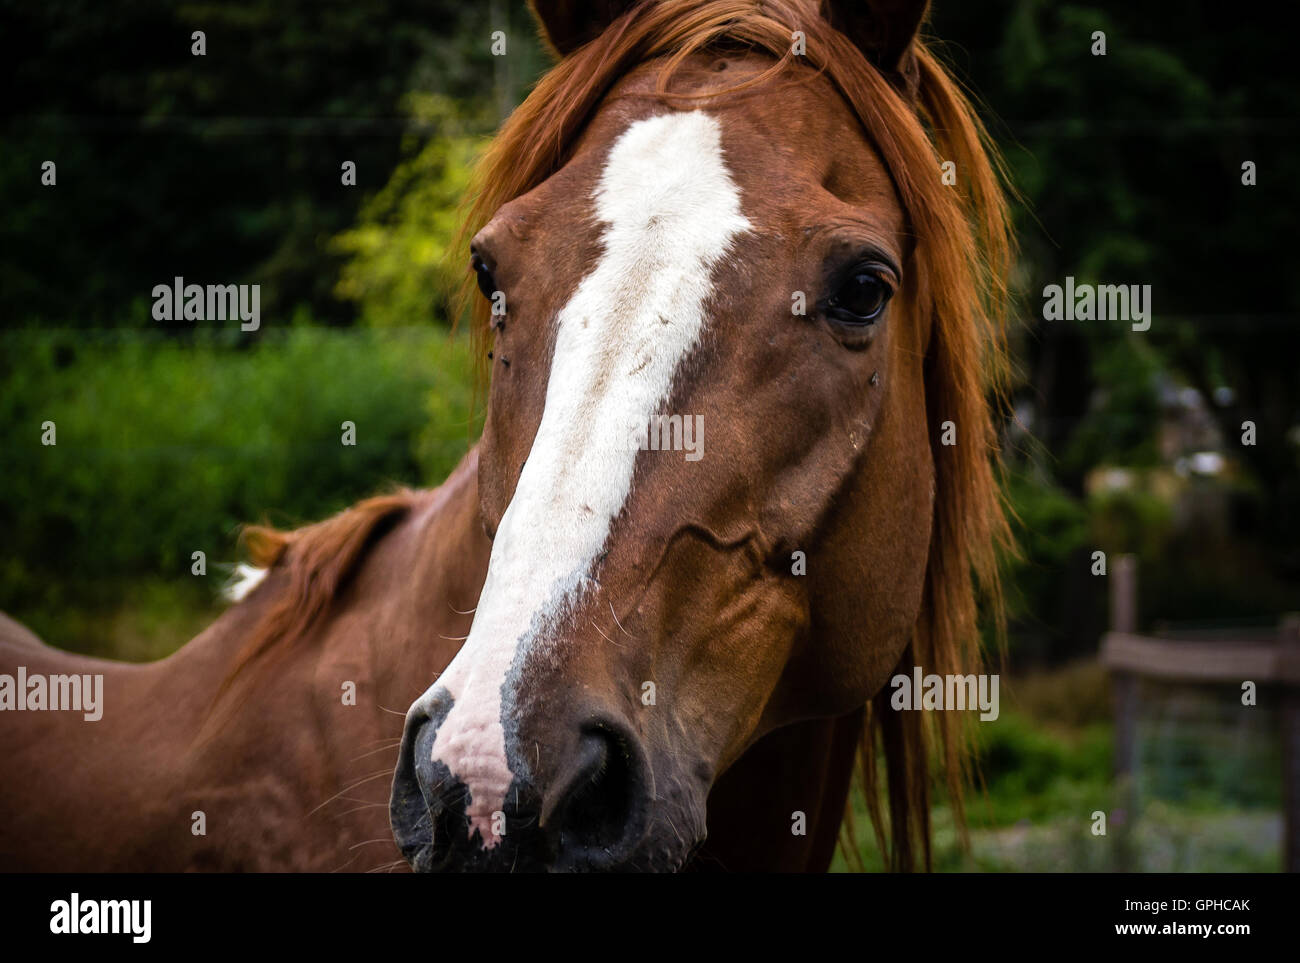 A bay horse stares back at the camera - Stock Image